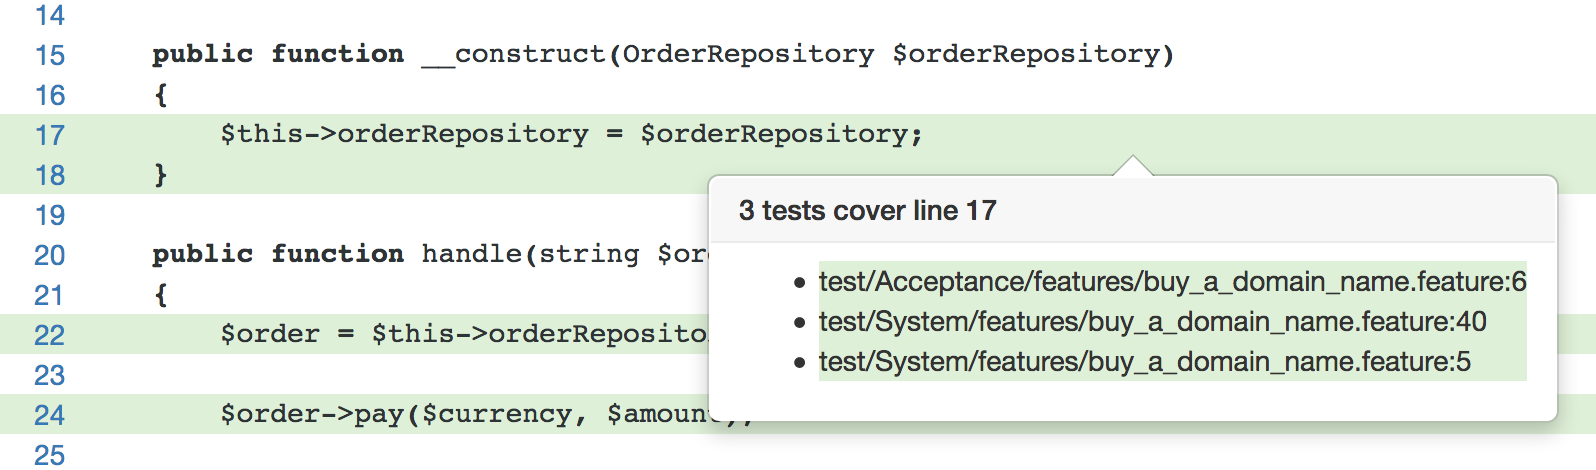 Merged code coverage report